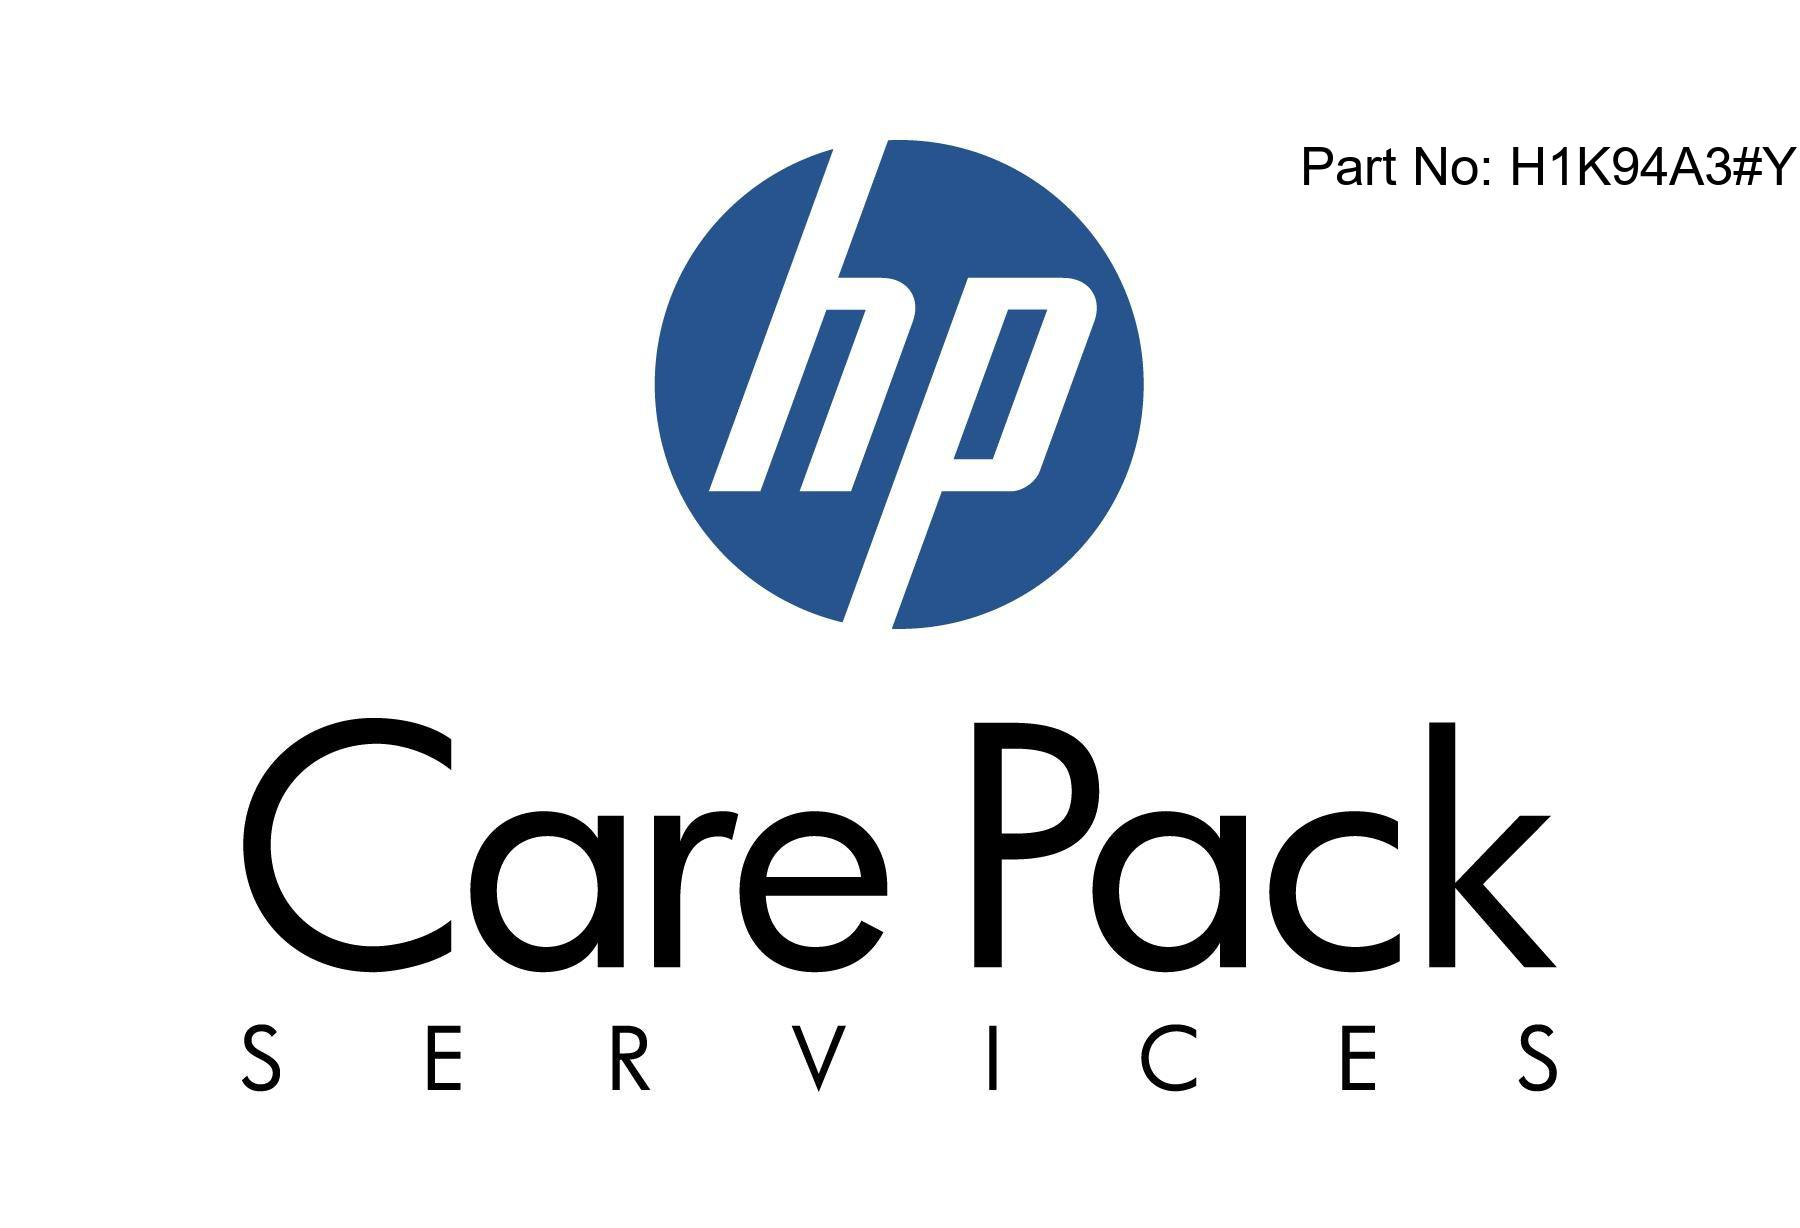 Proactive Care Call-To-Repair Service - Extended service agreement - parts and labor - 3 years - on-site - 24x7 - repair time: 6 hours - for P/N: C8S93A C8S93AR